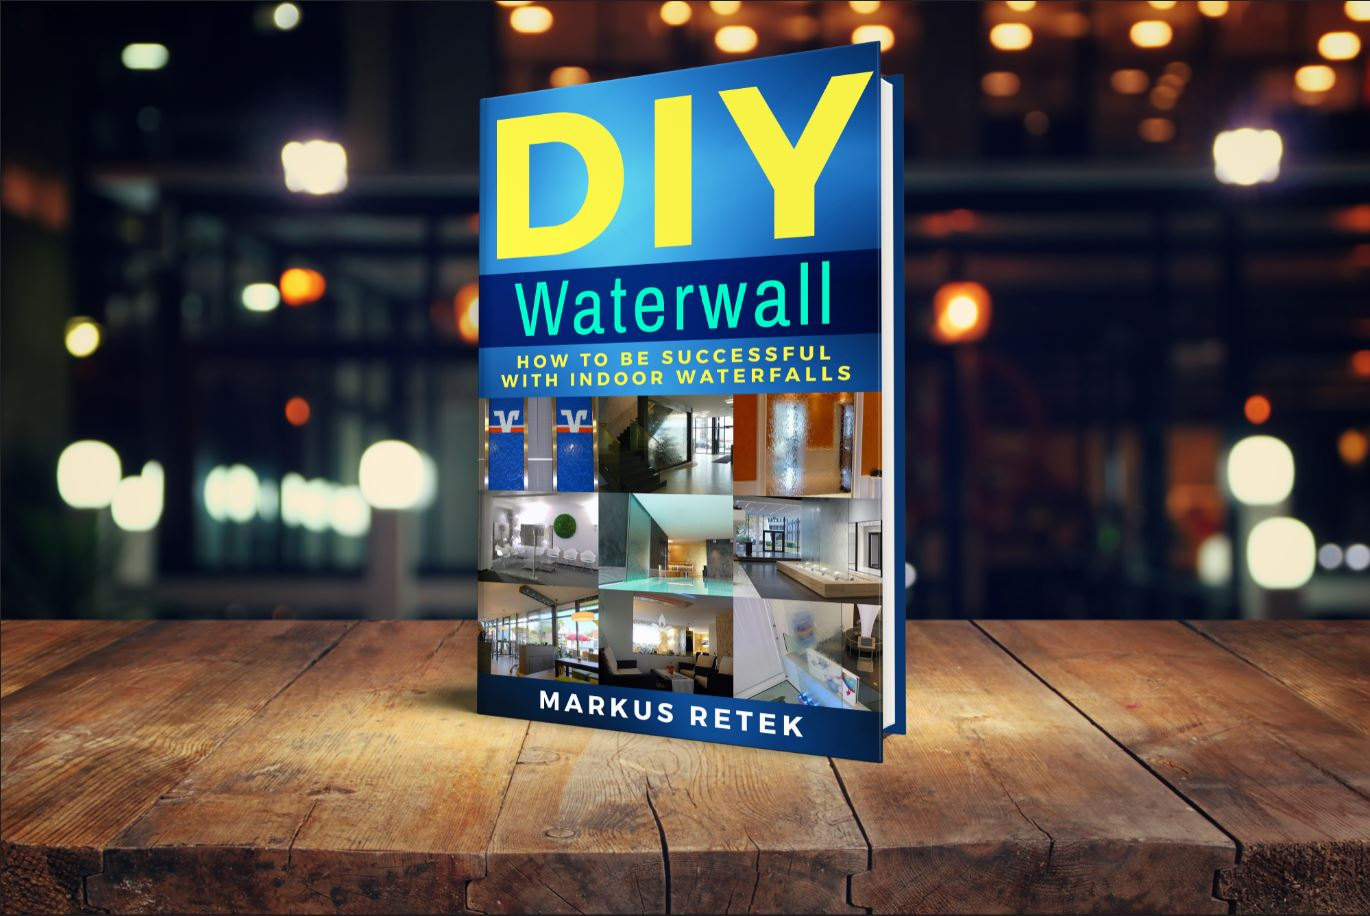 Wawazennet Launches Business Opportunity With Free Basic Diy Co Ok Who Would Have Thought That Something As Stunning Calming And Distinctive An Indoor Waterfall Could Be Made Simple Enough To Turn Into A